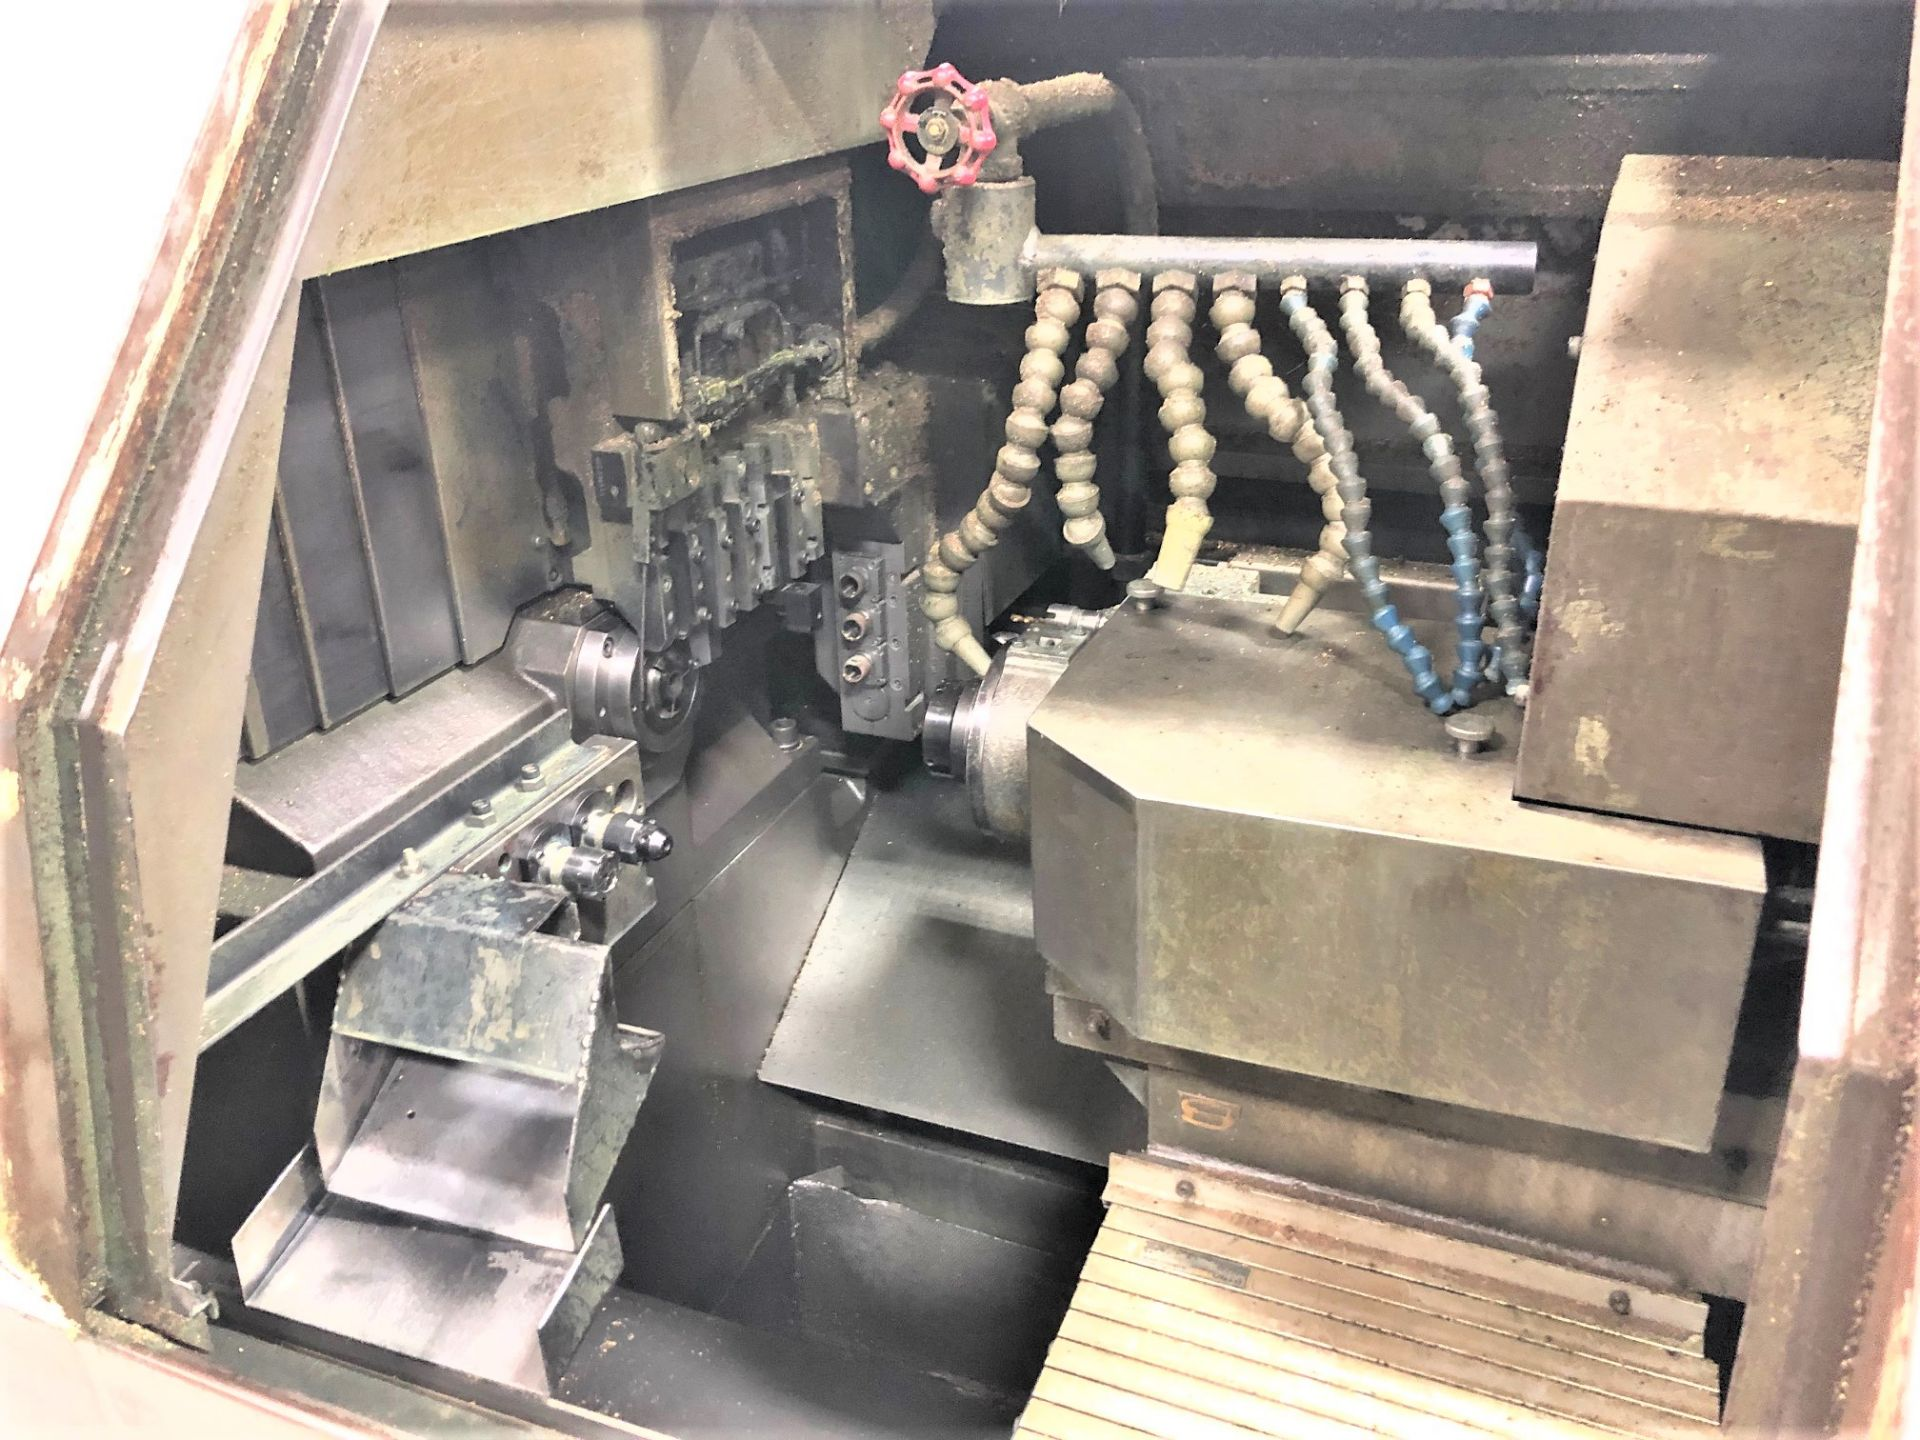 Lot 36 - 32mm Star SR-32 CNC Swiss Type Sliding Headstock Turning Center Automatic Lathe, S/N 031032,